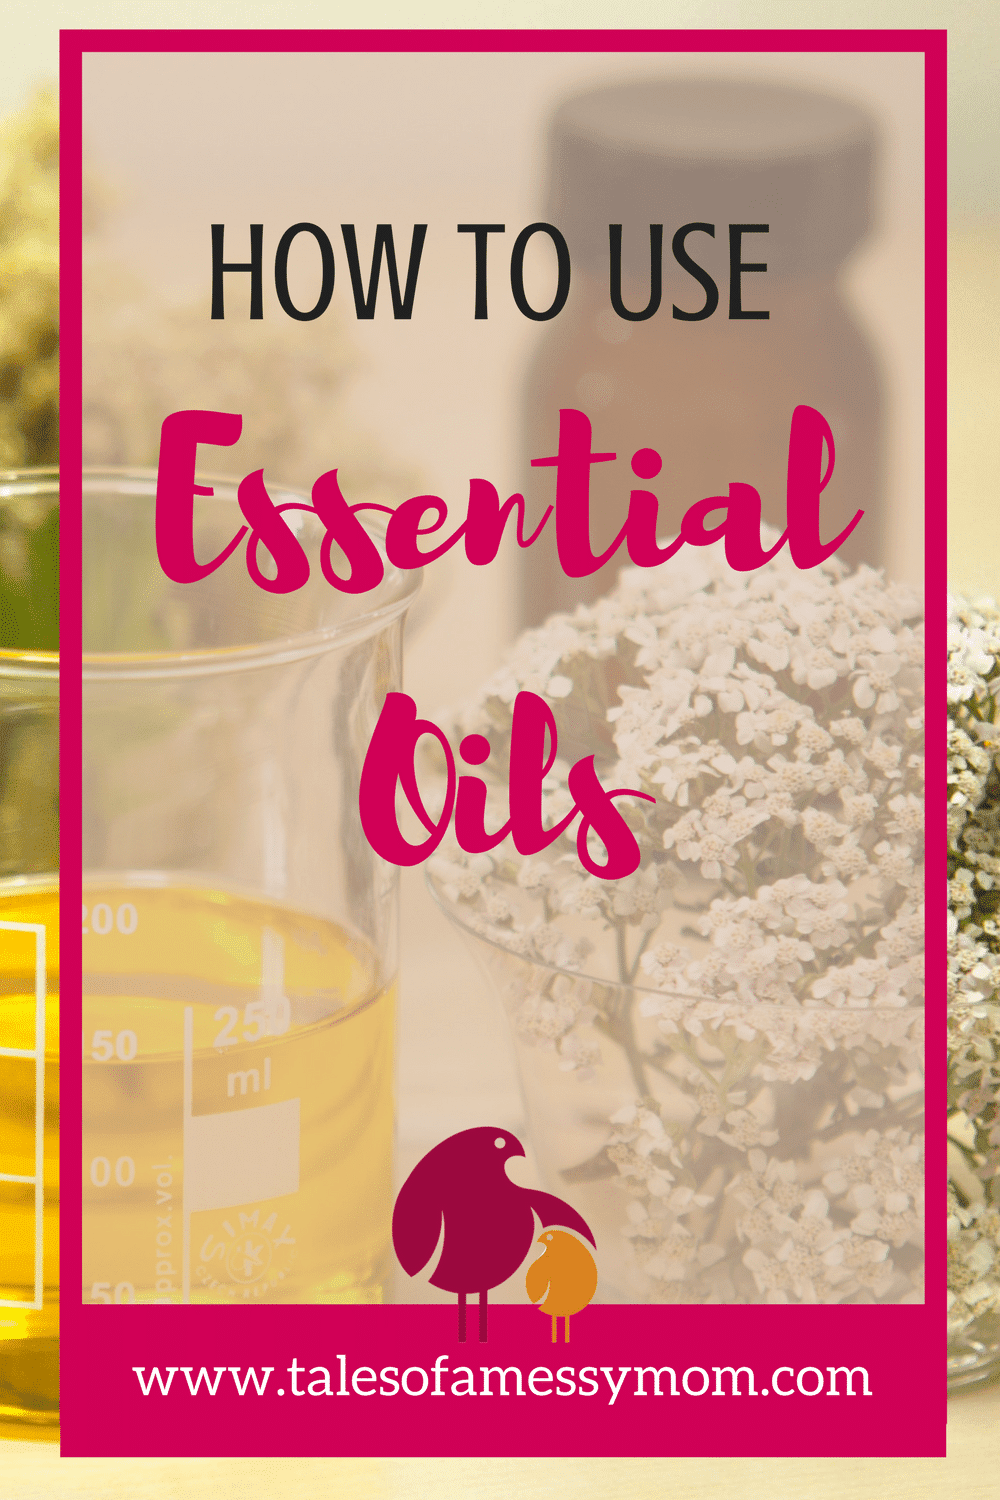 Essential oils are powerful tools, but getting started in essential oils can be overwhelming. Here is a basic introduction on how to use essential oils safely and effectively. http://www.talesofamessymom.com